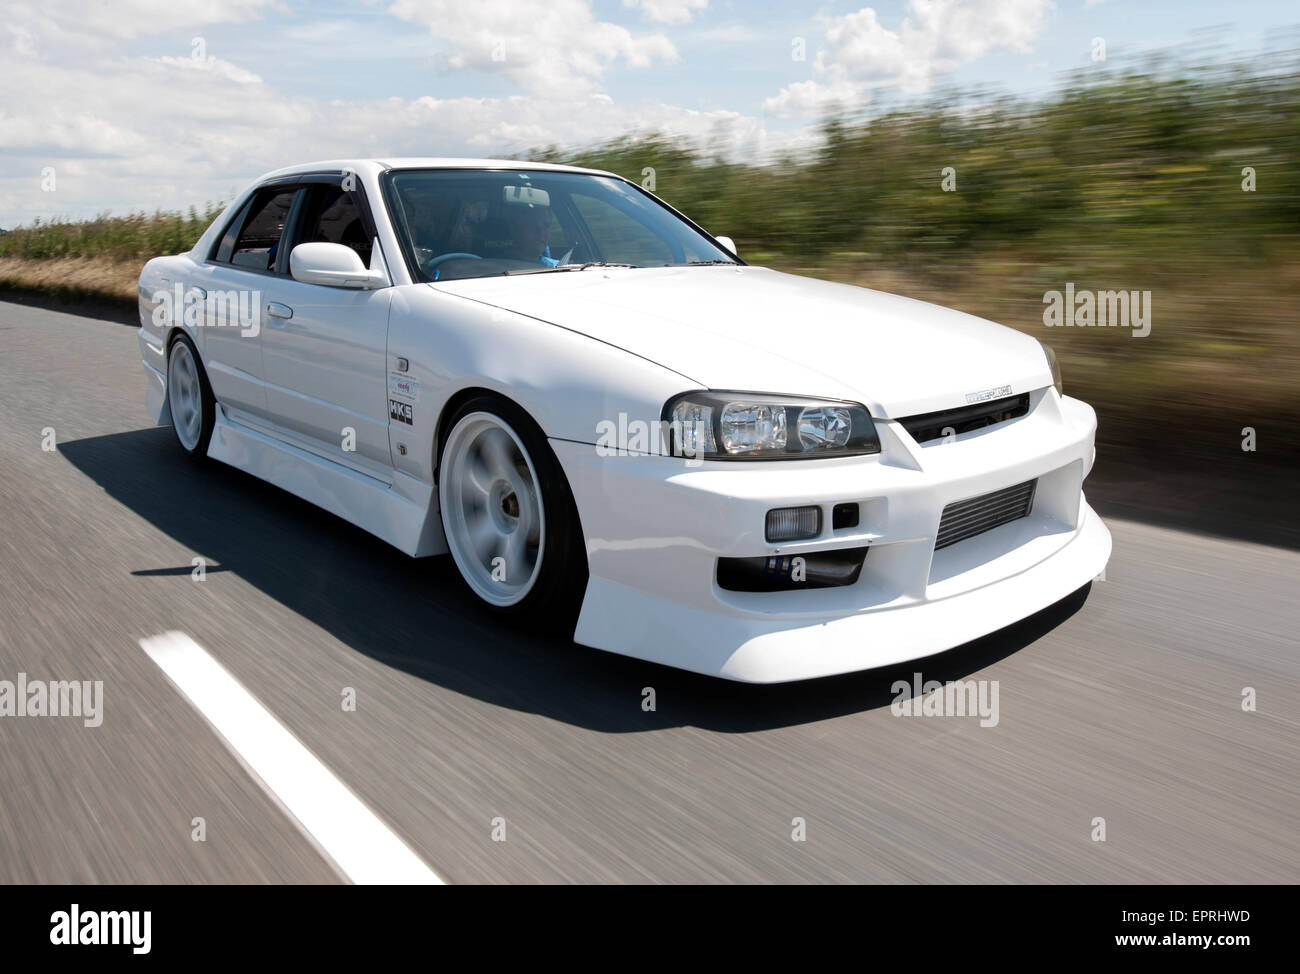 modified nissan r34 skyline performance car stock photo. Black Bedroom Furniture Sets. Home Design Ideas